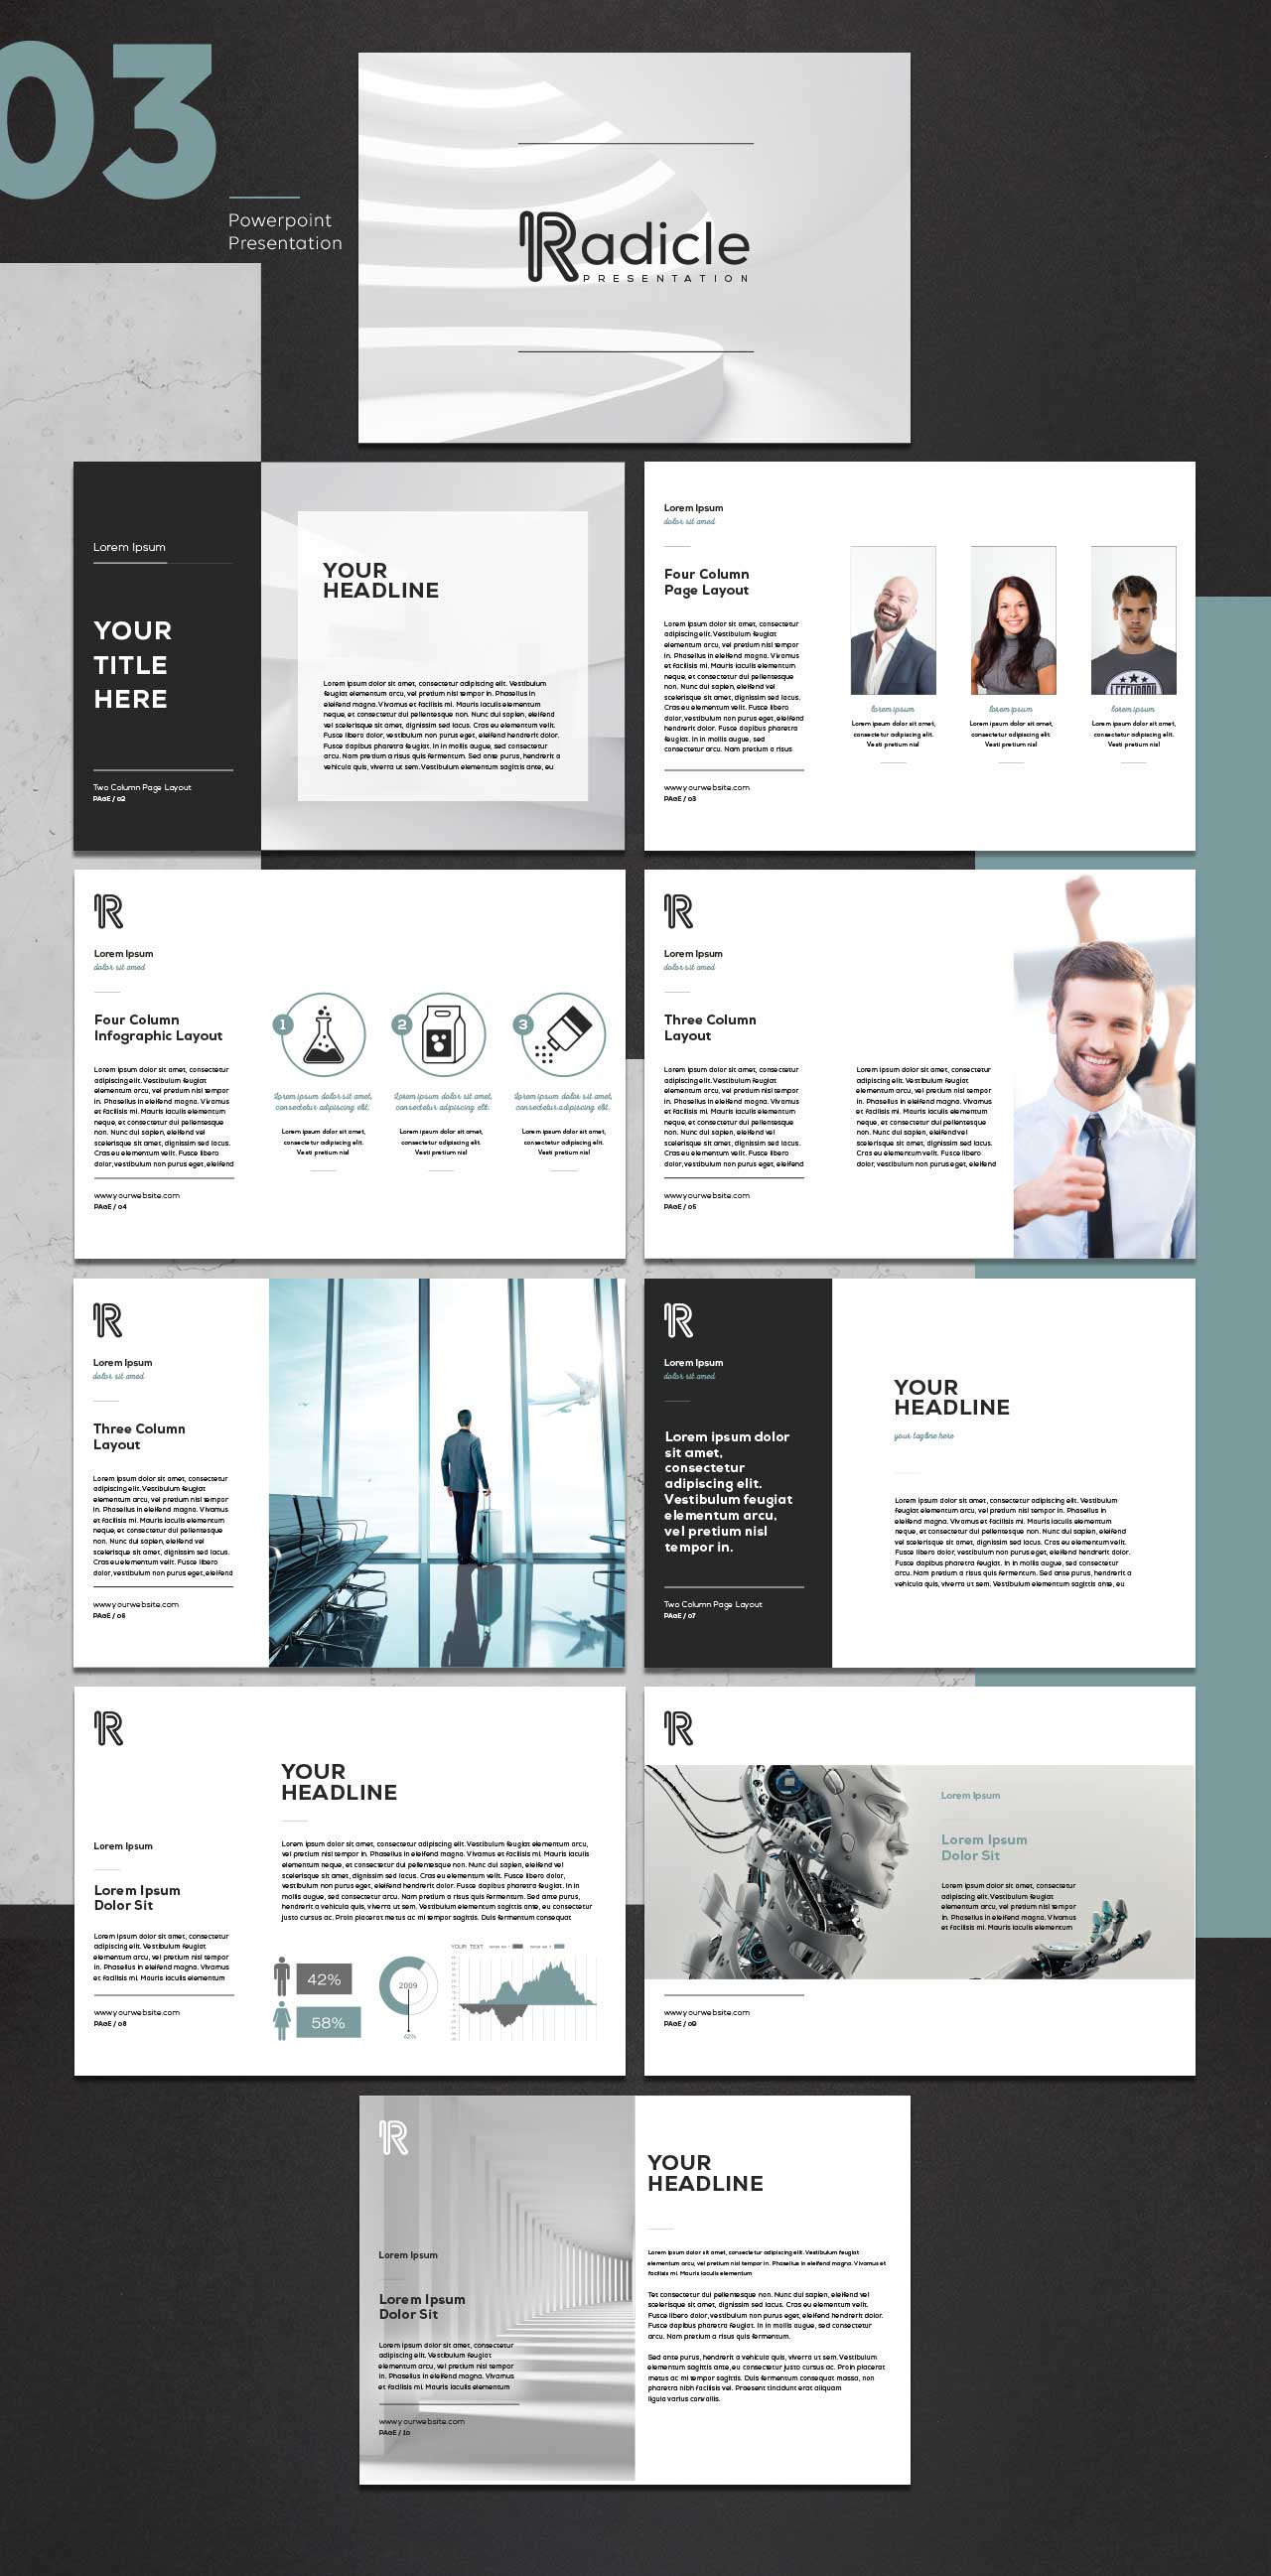 powerpoint page layout